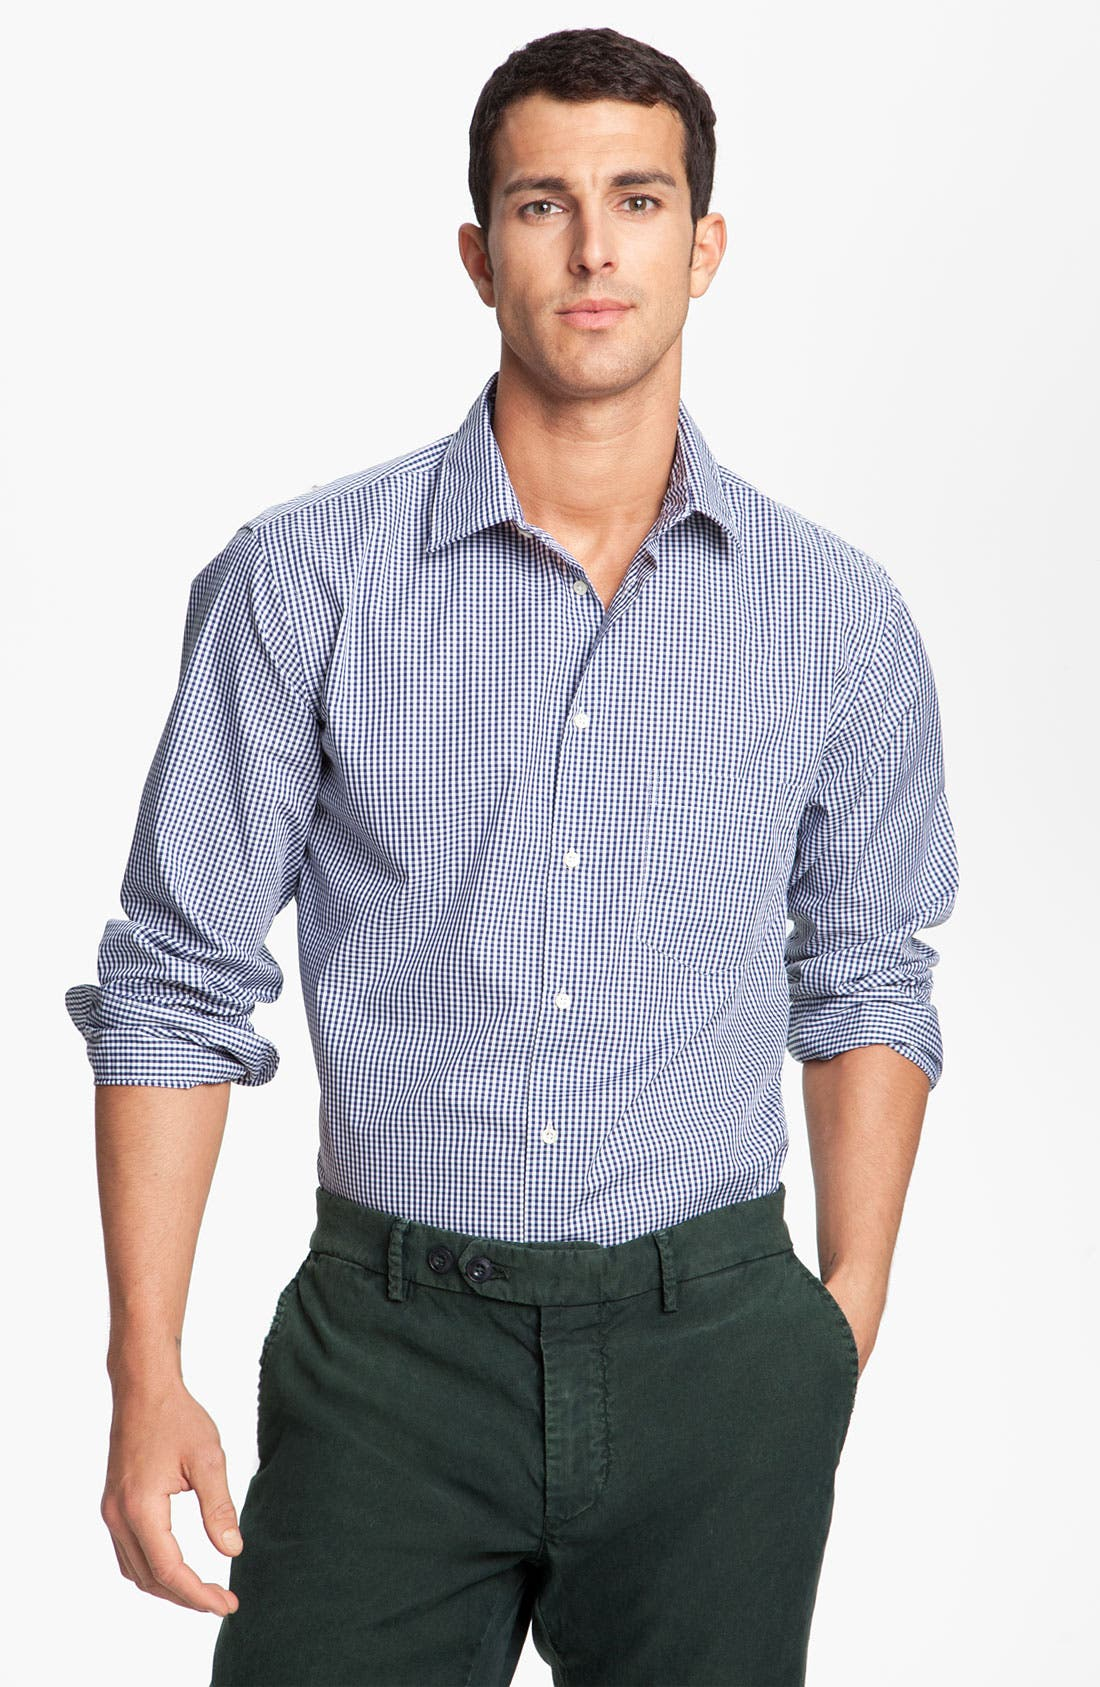 Main Image - Mason's Micro Gingham Cotton Shirt